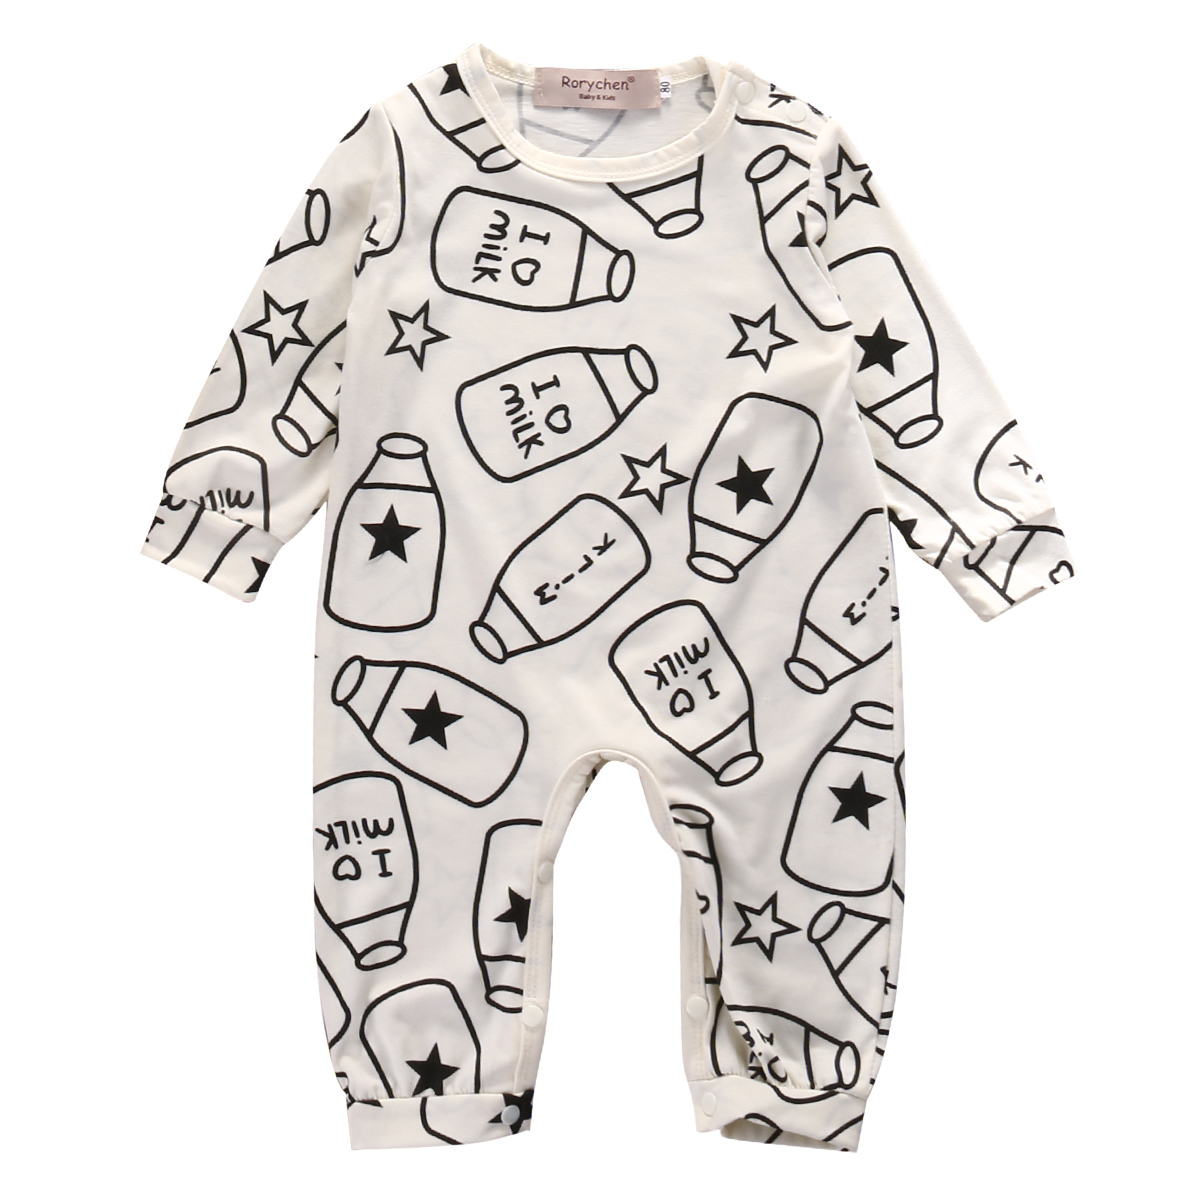 Newborn Kids Baby Boy Girl Long Sleeve Bodysuit Romper Jumpsuit Outfits Clothes